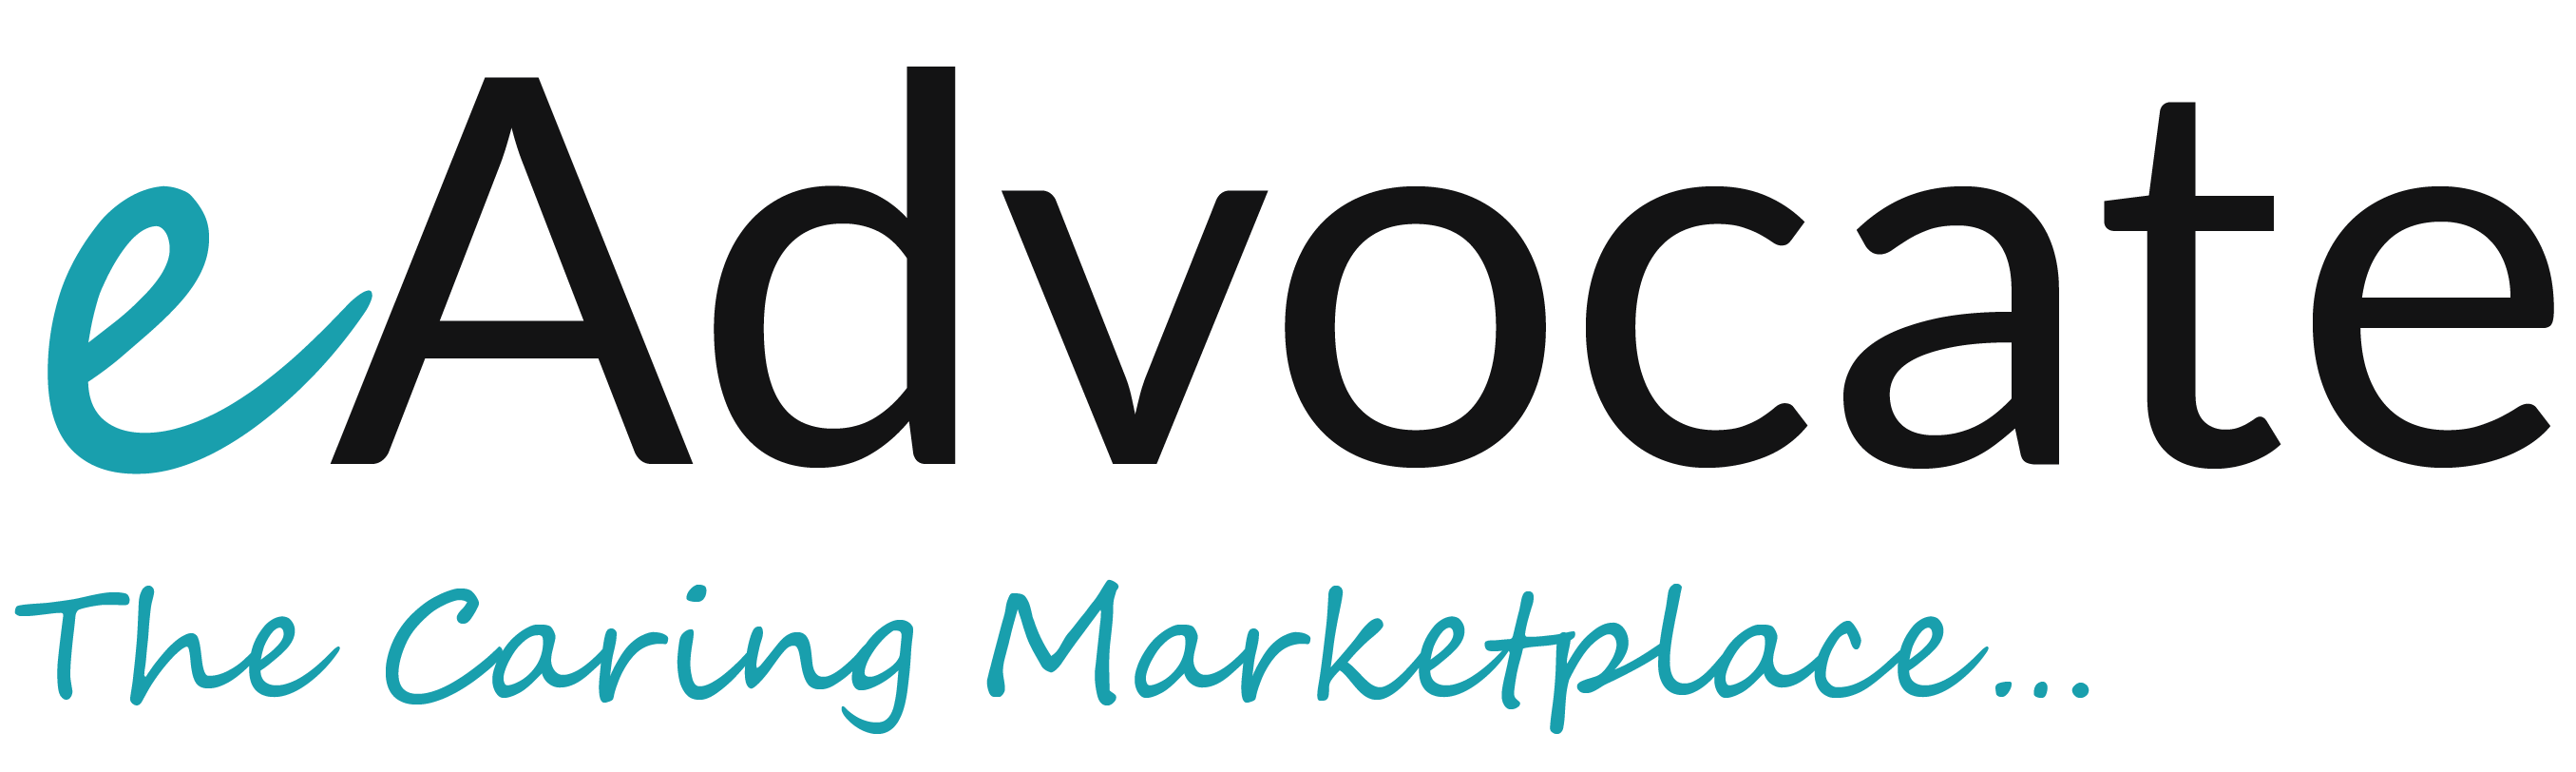 eAdvocate, The Caring Marketplace